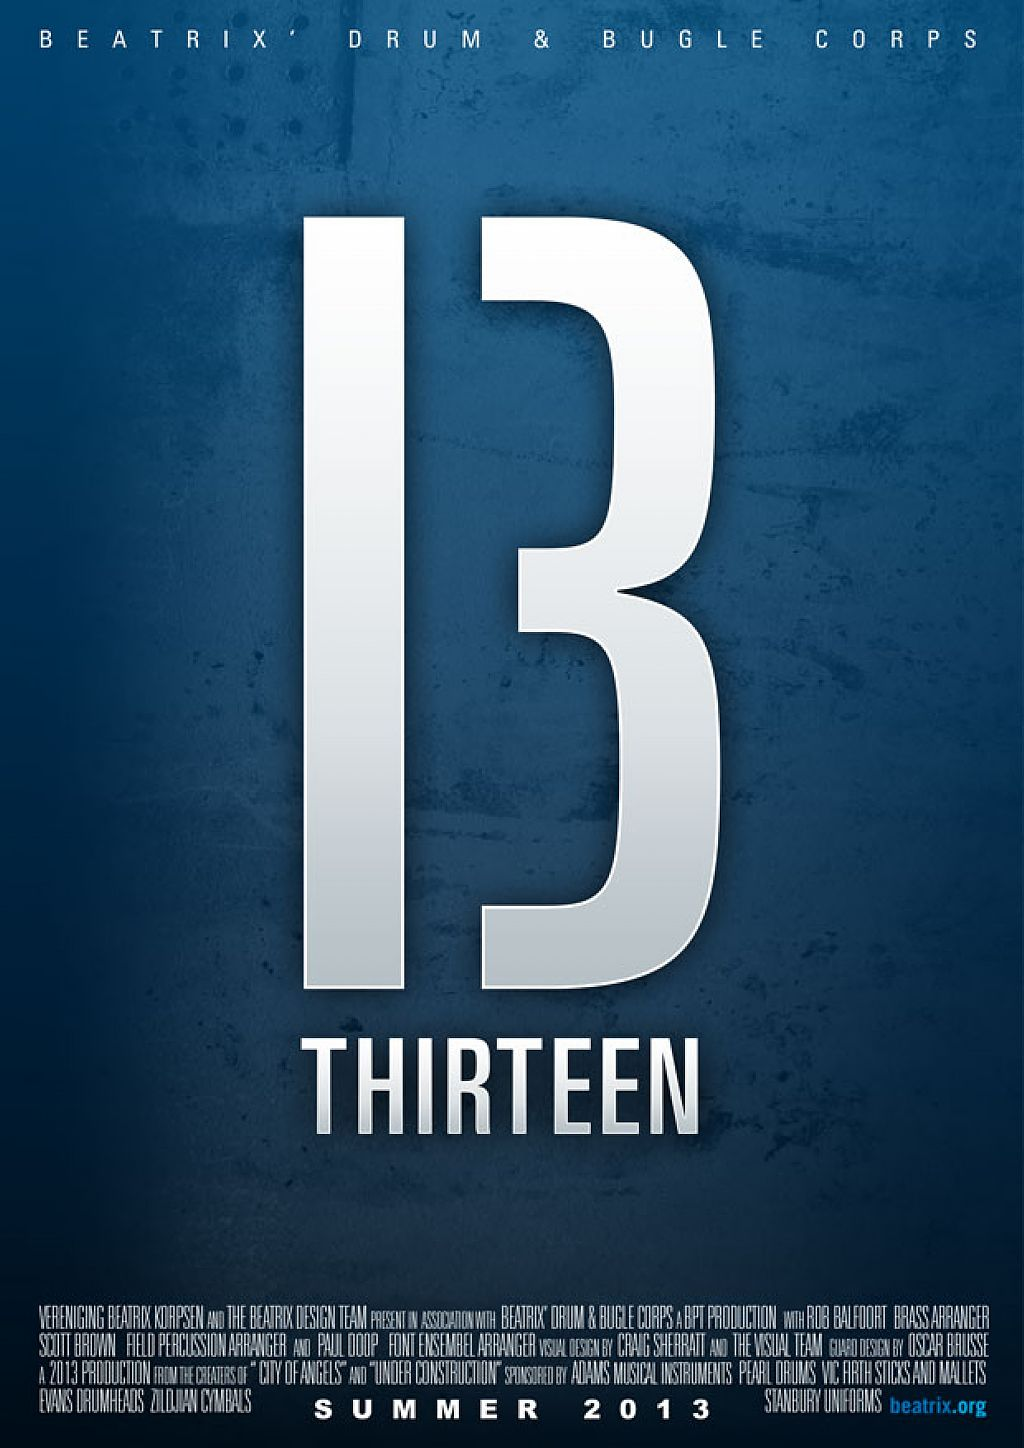 Beatrix' proudly presents: THIRTEEN